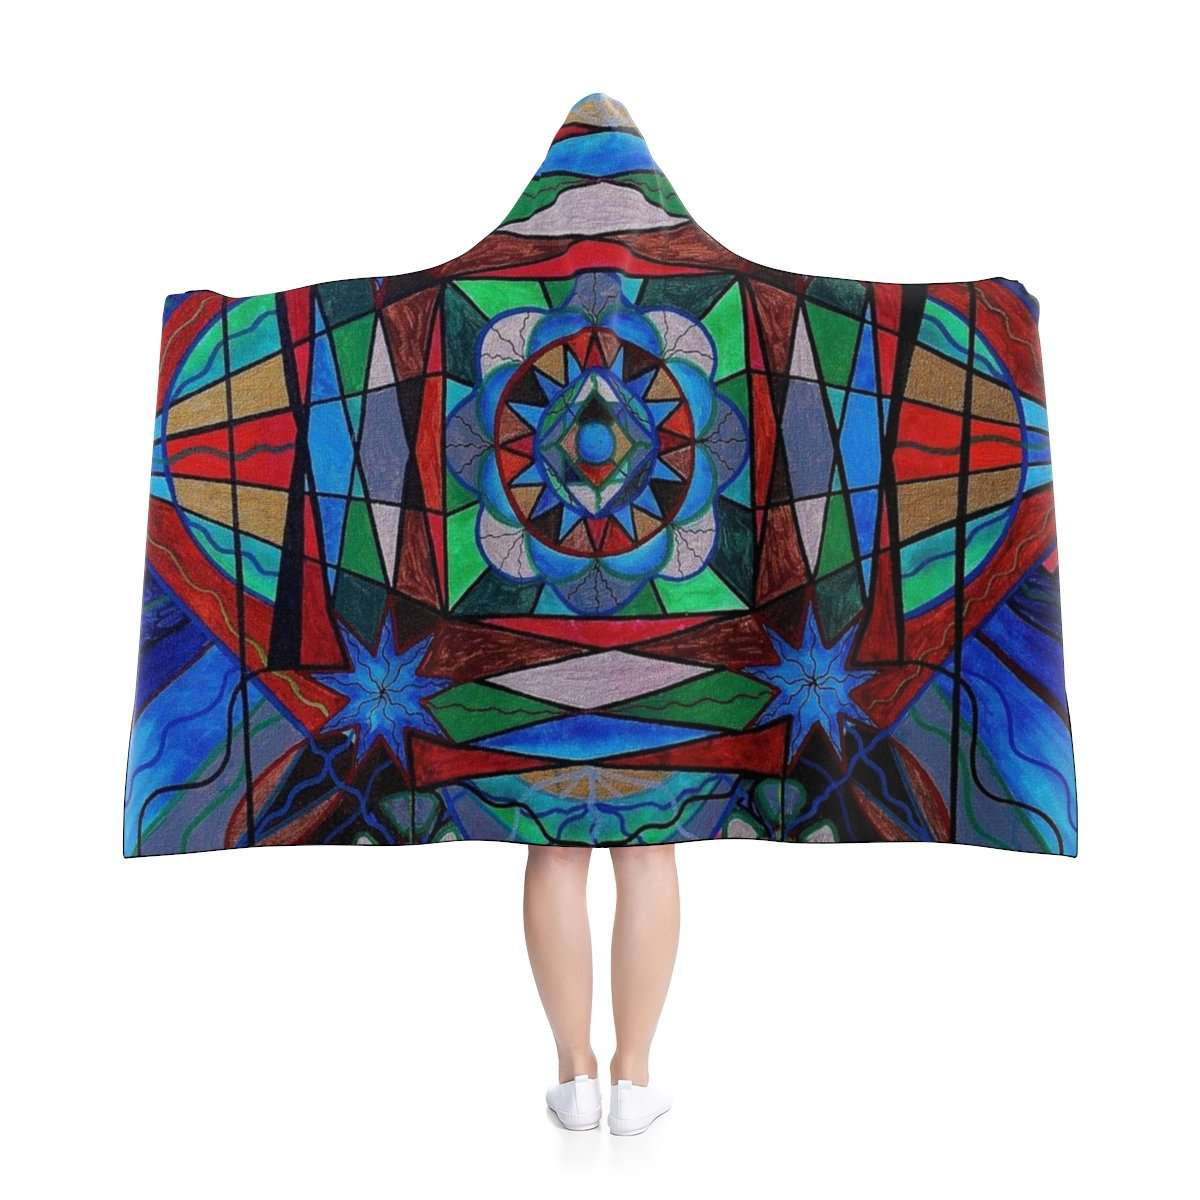 Sense of Security - Hooded Blanket